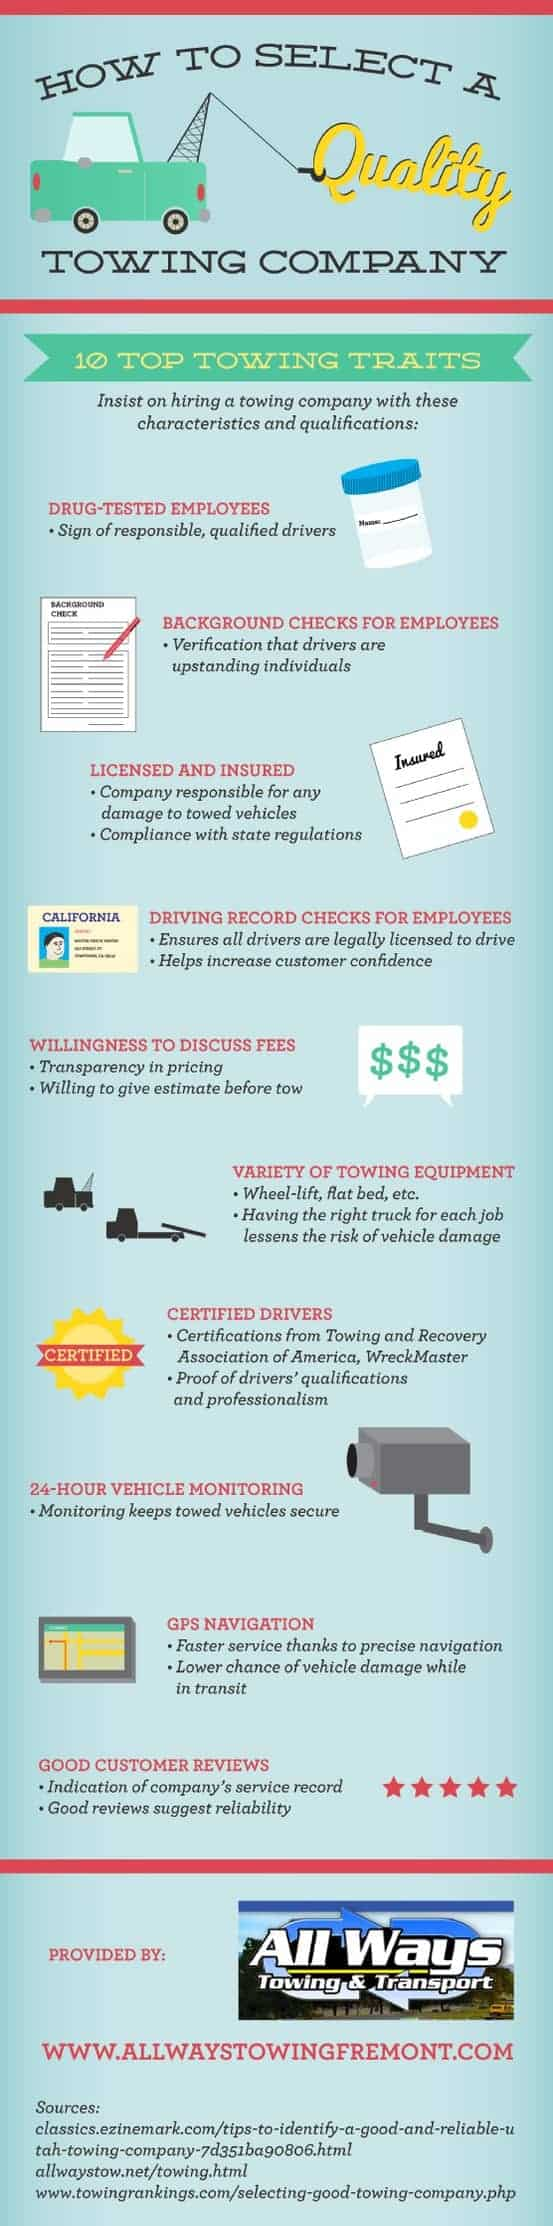 select towing company infographic